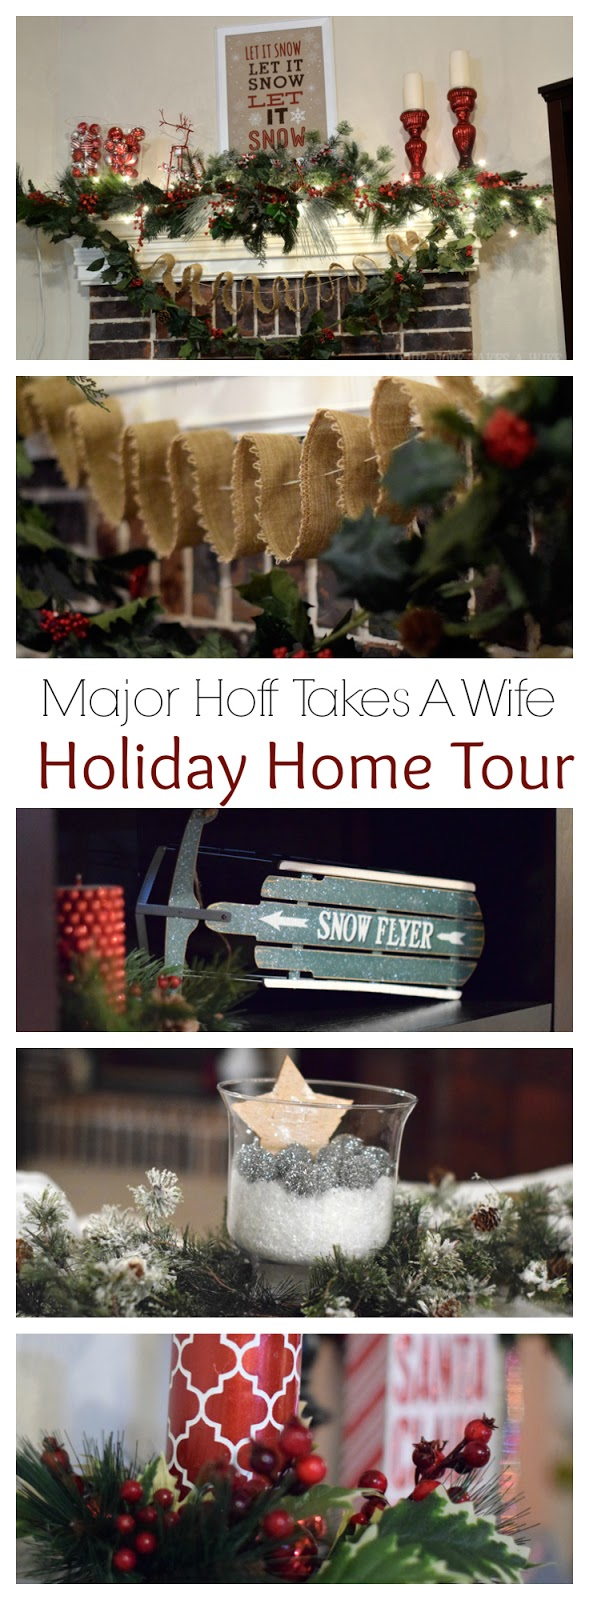 Major Hoff Takes A Wife Holiday Home Tour 2014. Part of the Procrastinators Holiday Blog Hop. Enjoy!